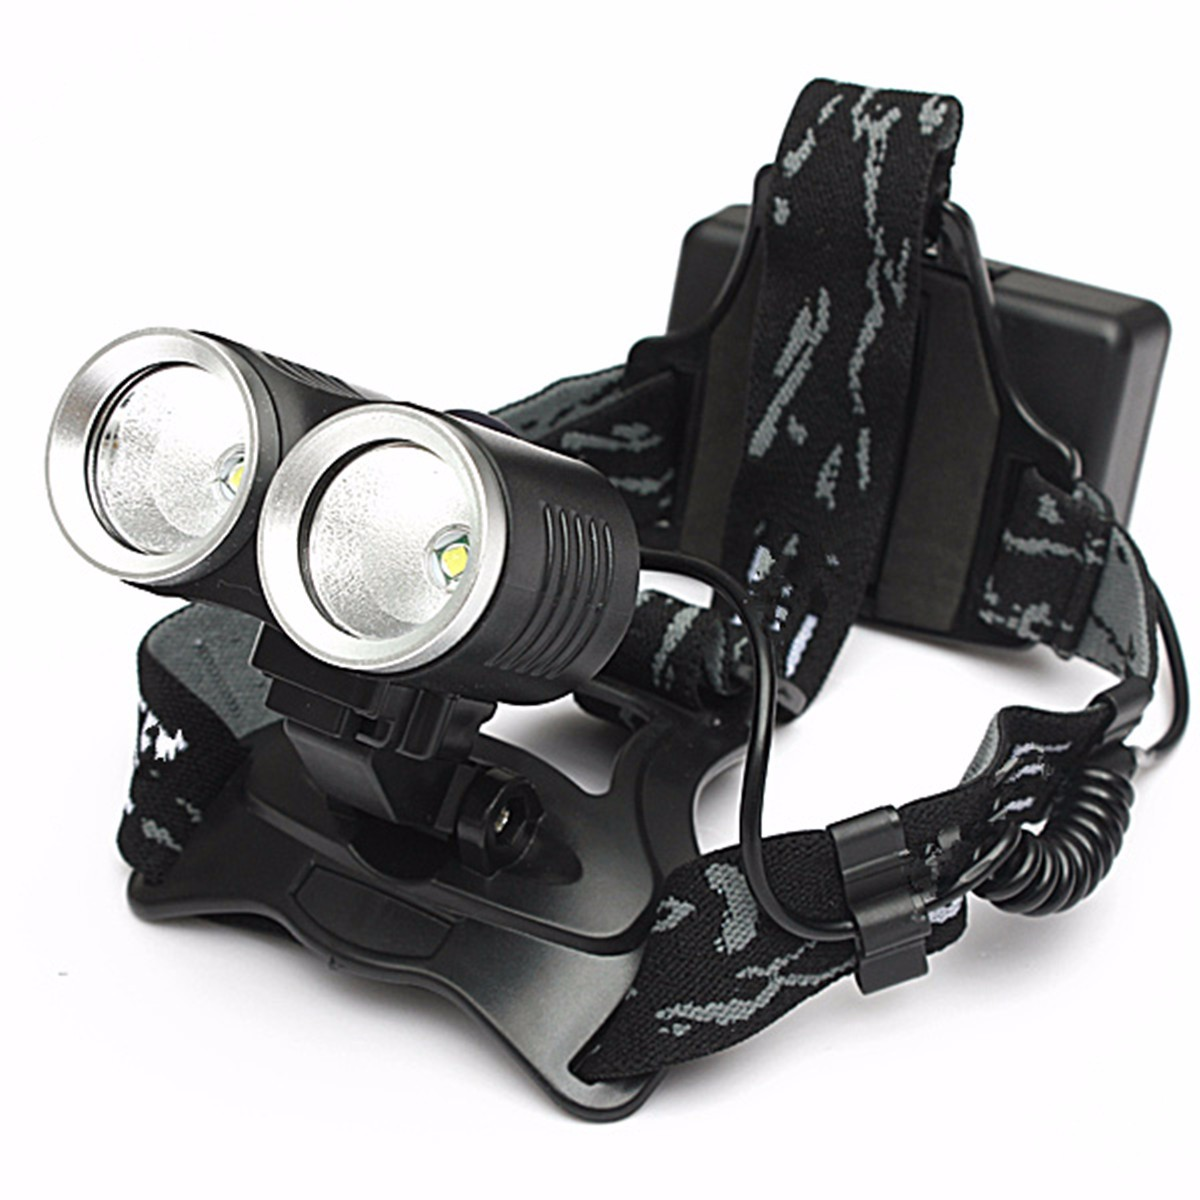 Elfeland 50000Lm 2x  T6 LED Rechargeable Headlight Headlamp Bicycle Front Light 5 Modes Head Light Torch Lamp